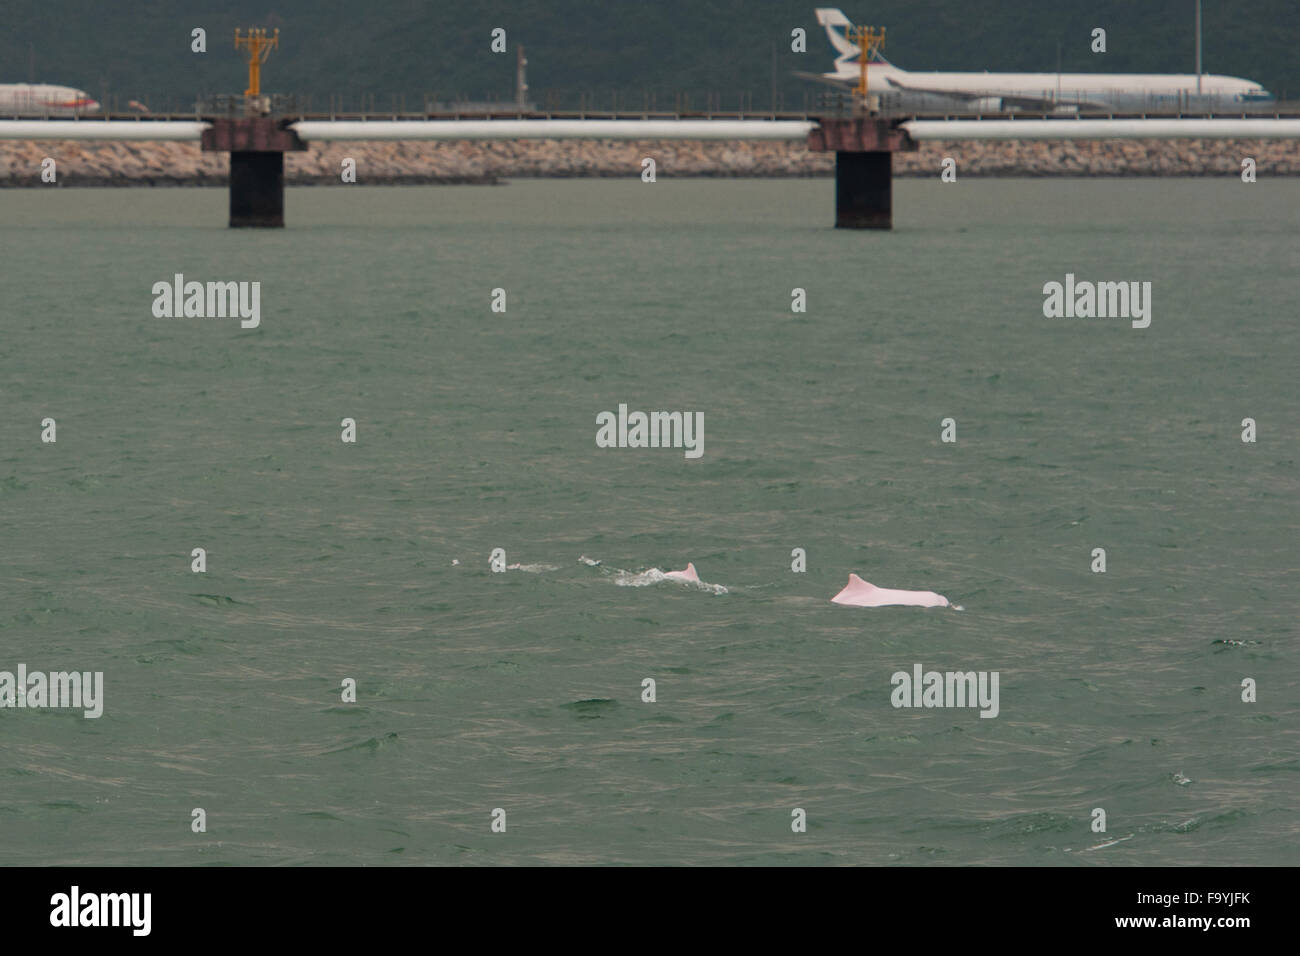 Indo-Pacific Humpback Dolphin (Sousa chinensis), adult female & calf surfacing  near Hong Kong Airport Runway, - Stock Image